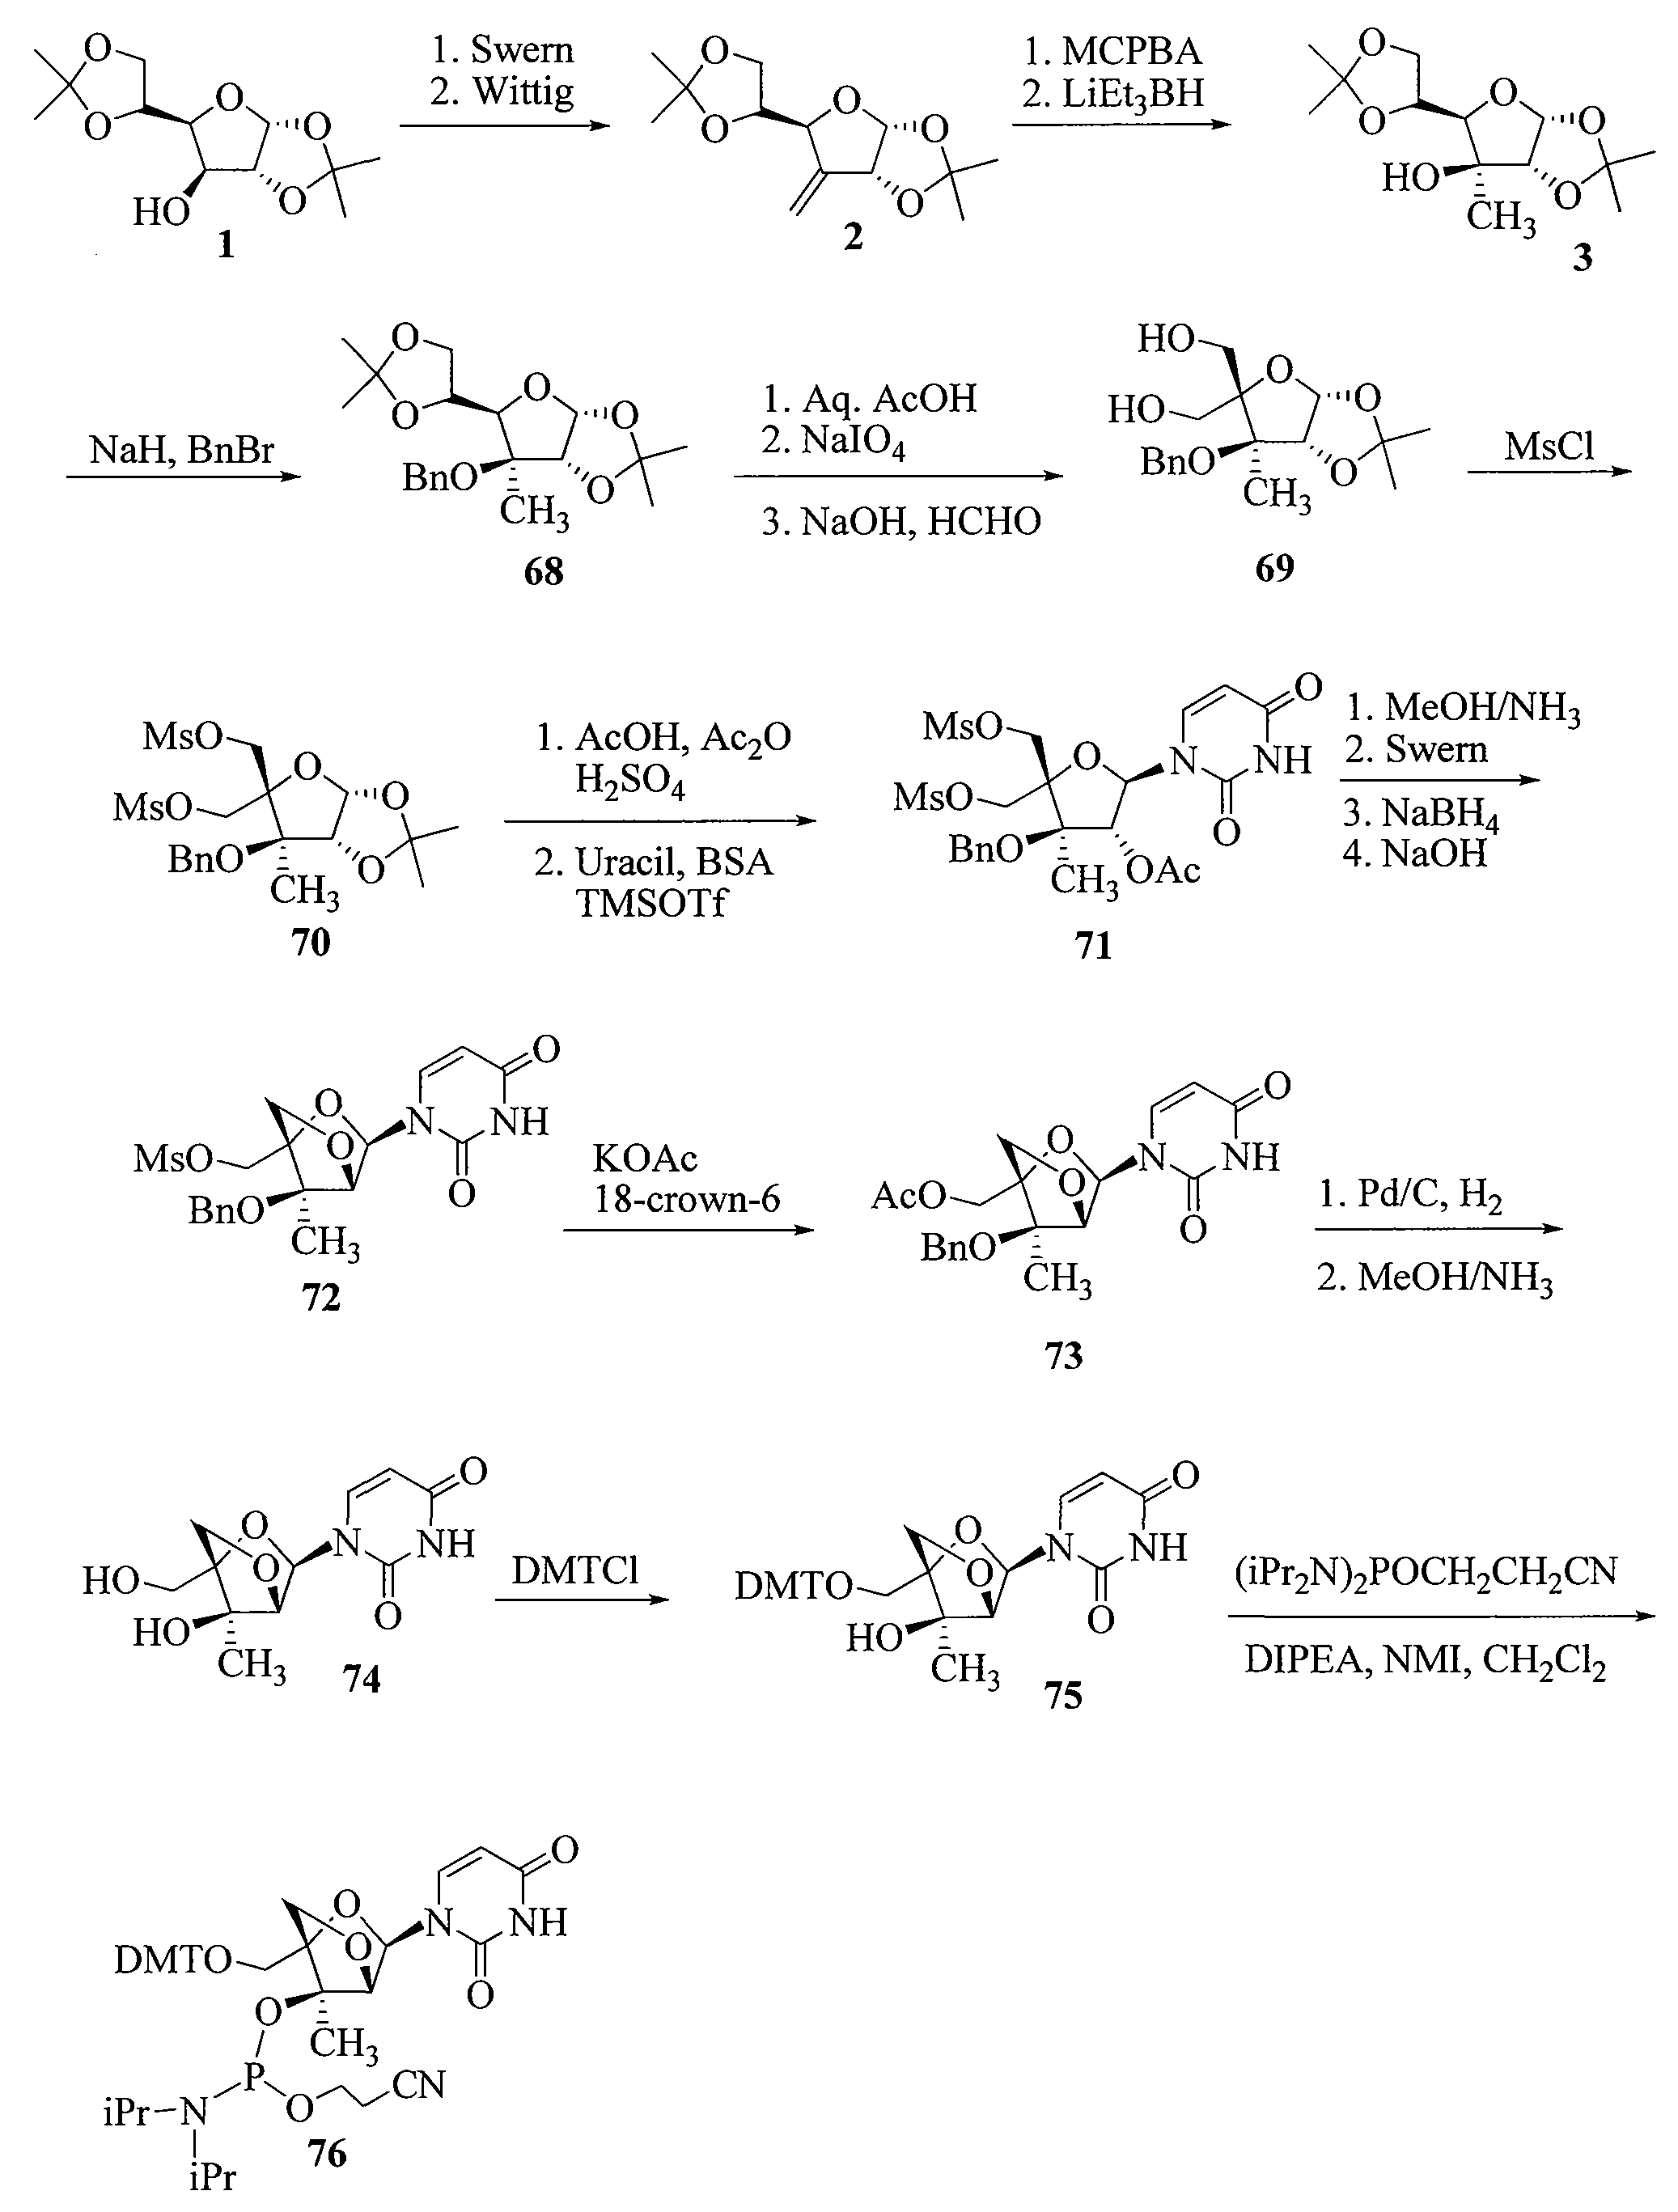 synthesis of 7 7 dichlorobicyclo 4 1 0 heptane phase Experiment 12 the synthesis of 7,7-dichlorobicyclo[410]heptane 105 experiment 13 the preparation of tropylium lodide form cyclohepdtatriene 114 experiment 14 preparation of triphenylmethyl bromide and the trityl free radical 123.